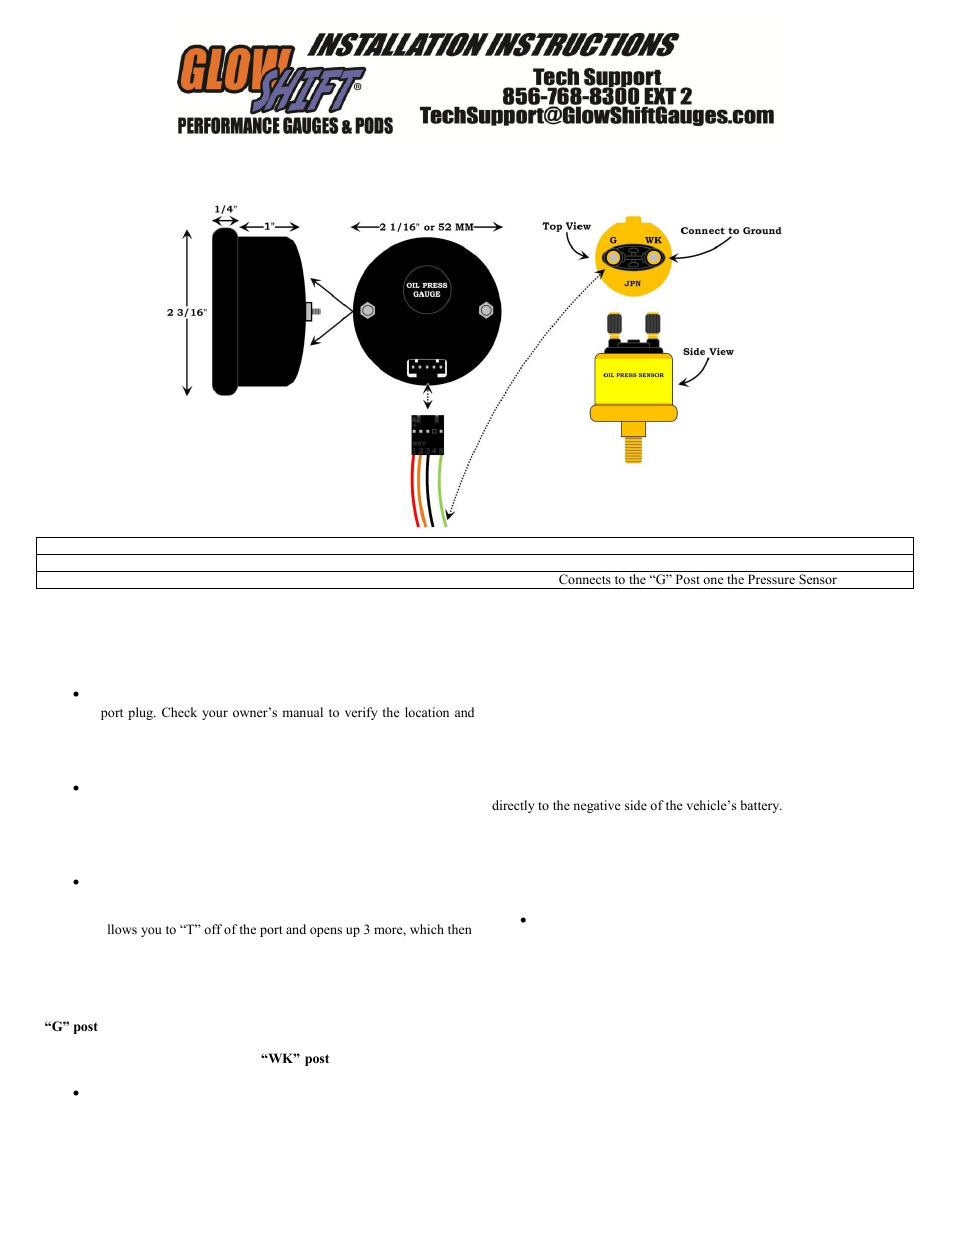 GlowShift Digital Series BAR Oil Pressure Gauge User Manual | 3 pages |  Also for: BAR Oil Pressure Gauge